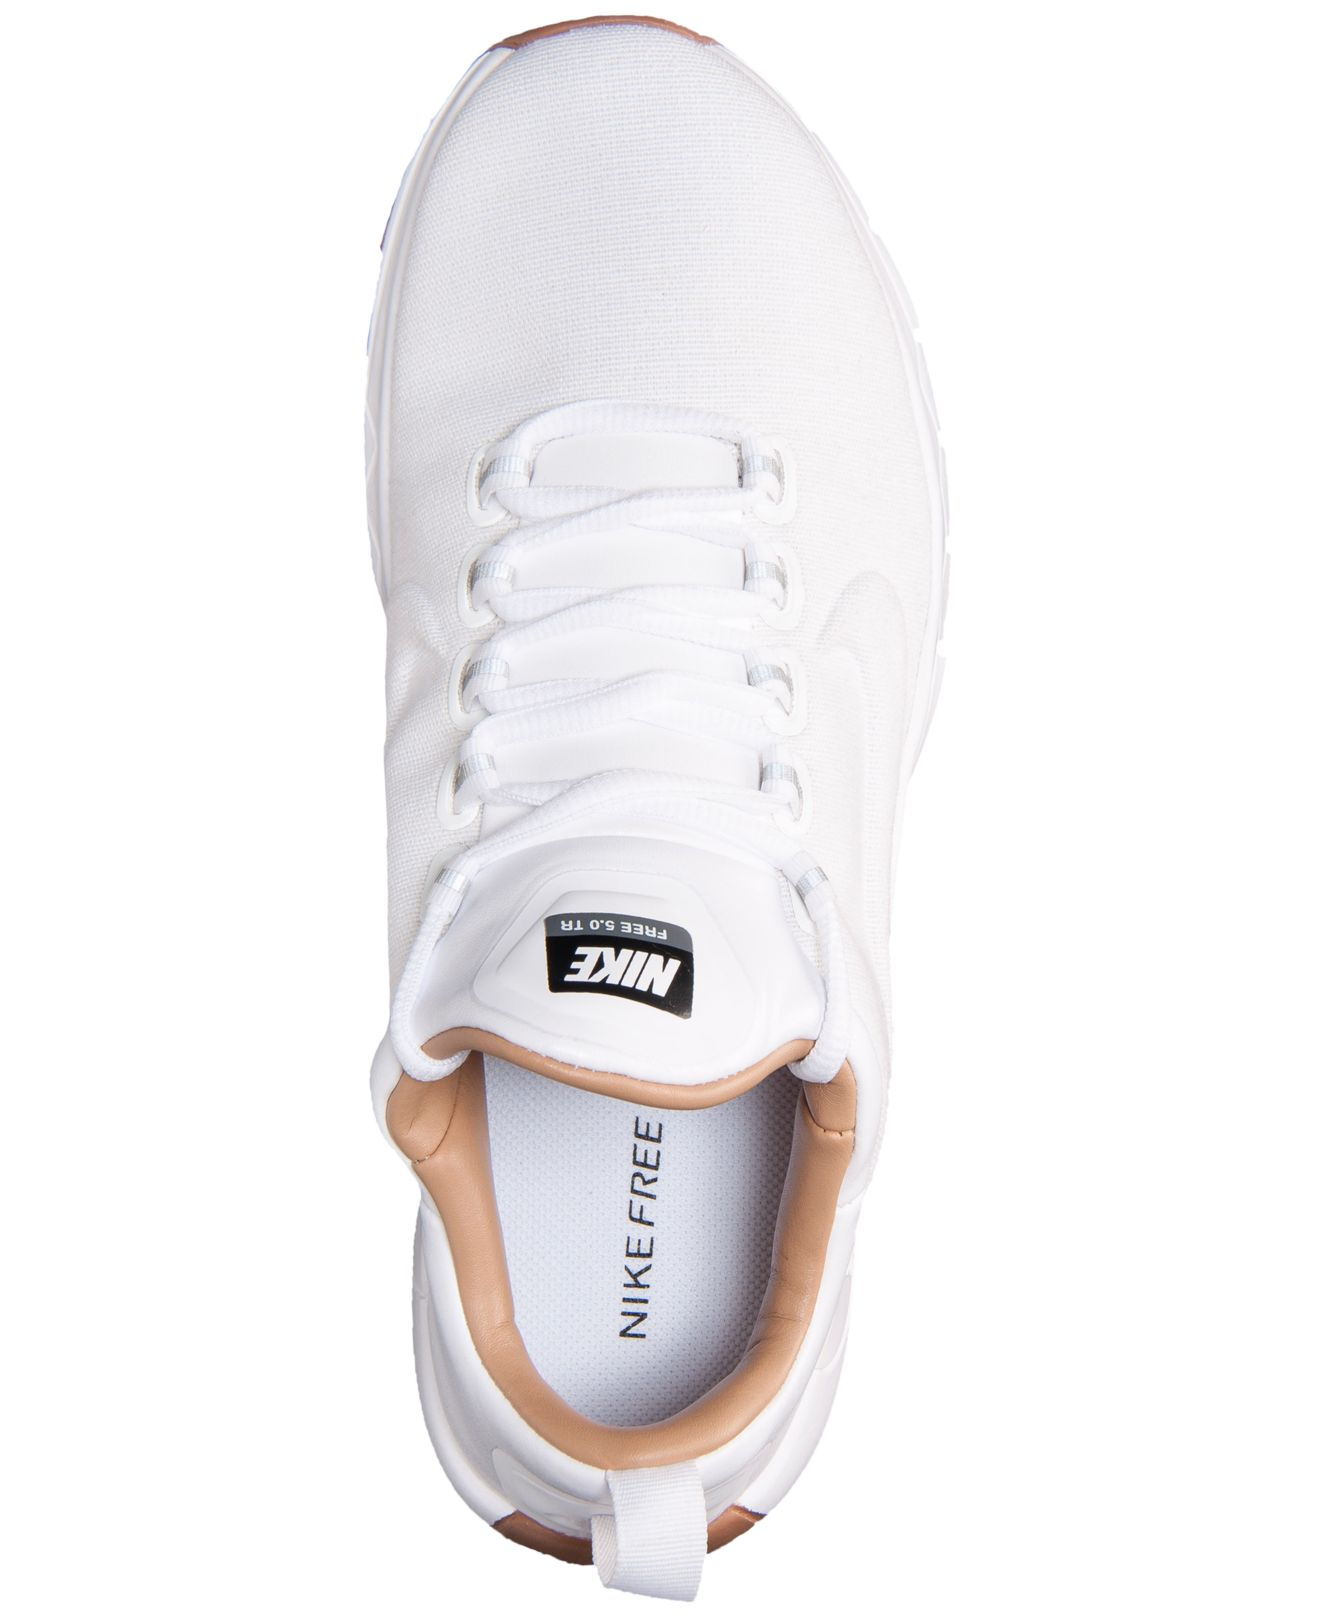 30a6f485fad5 ... promo code for lyst nike mens free trainer 5.0 premium running sneakers  from 4a3cc 8ee4c